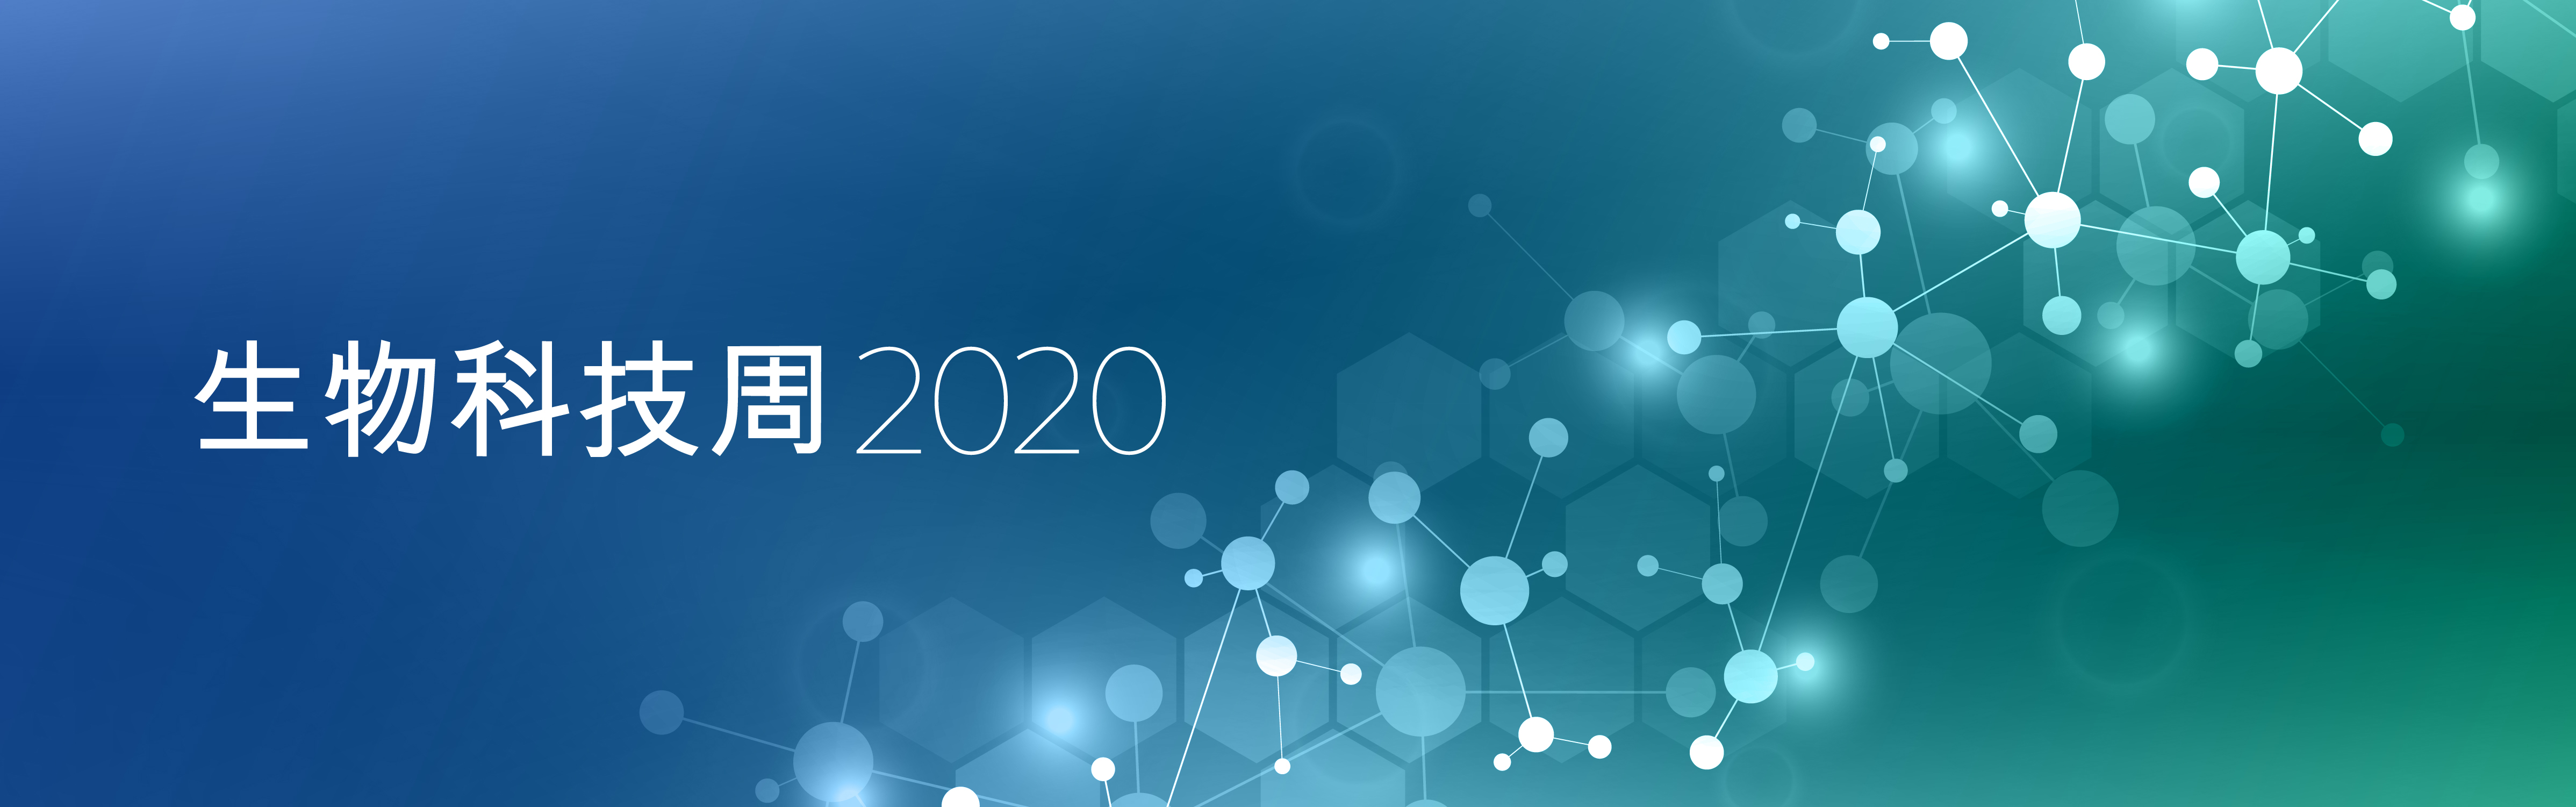 HKEX2020-Banner-2nd-15 (less spacing